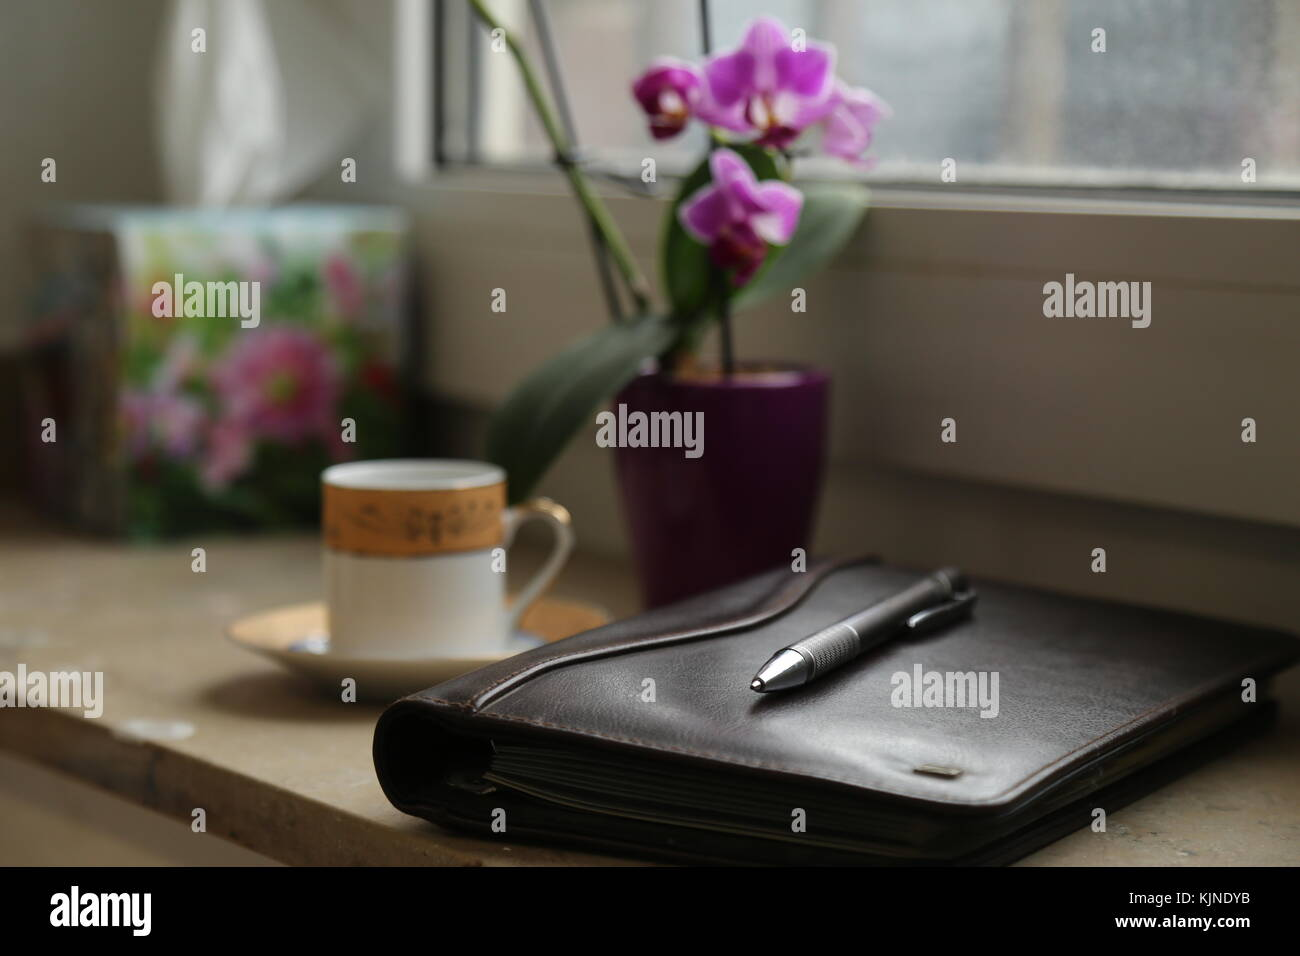 Notebook Pencil Coffee Work Station Office Leather Desk Table With Stock Photo Alamy